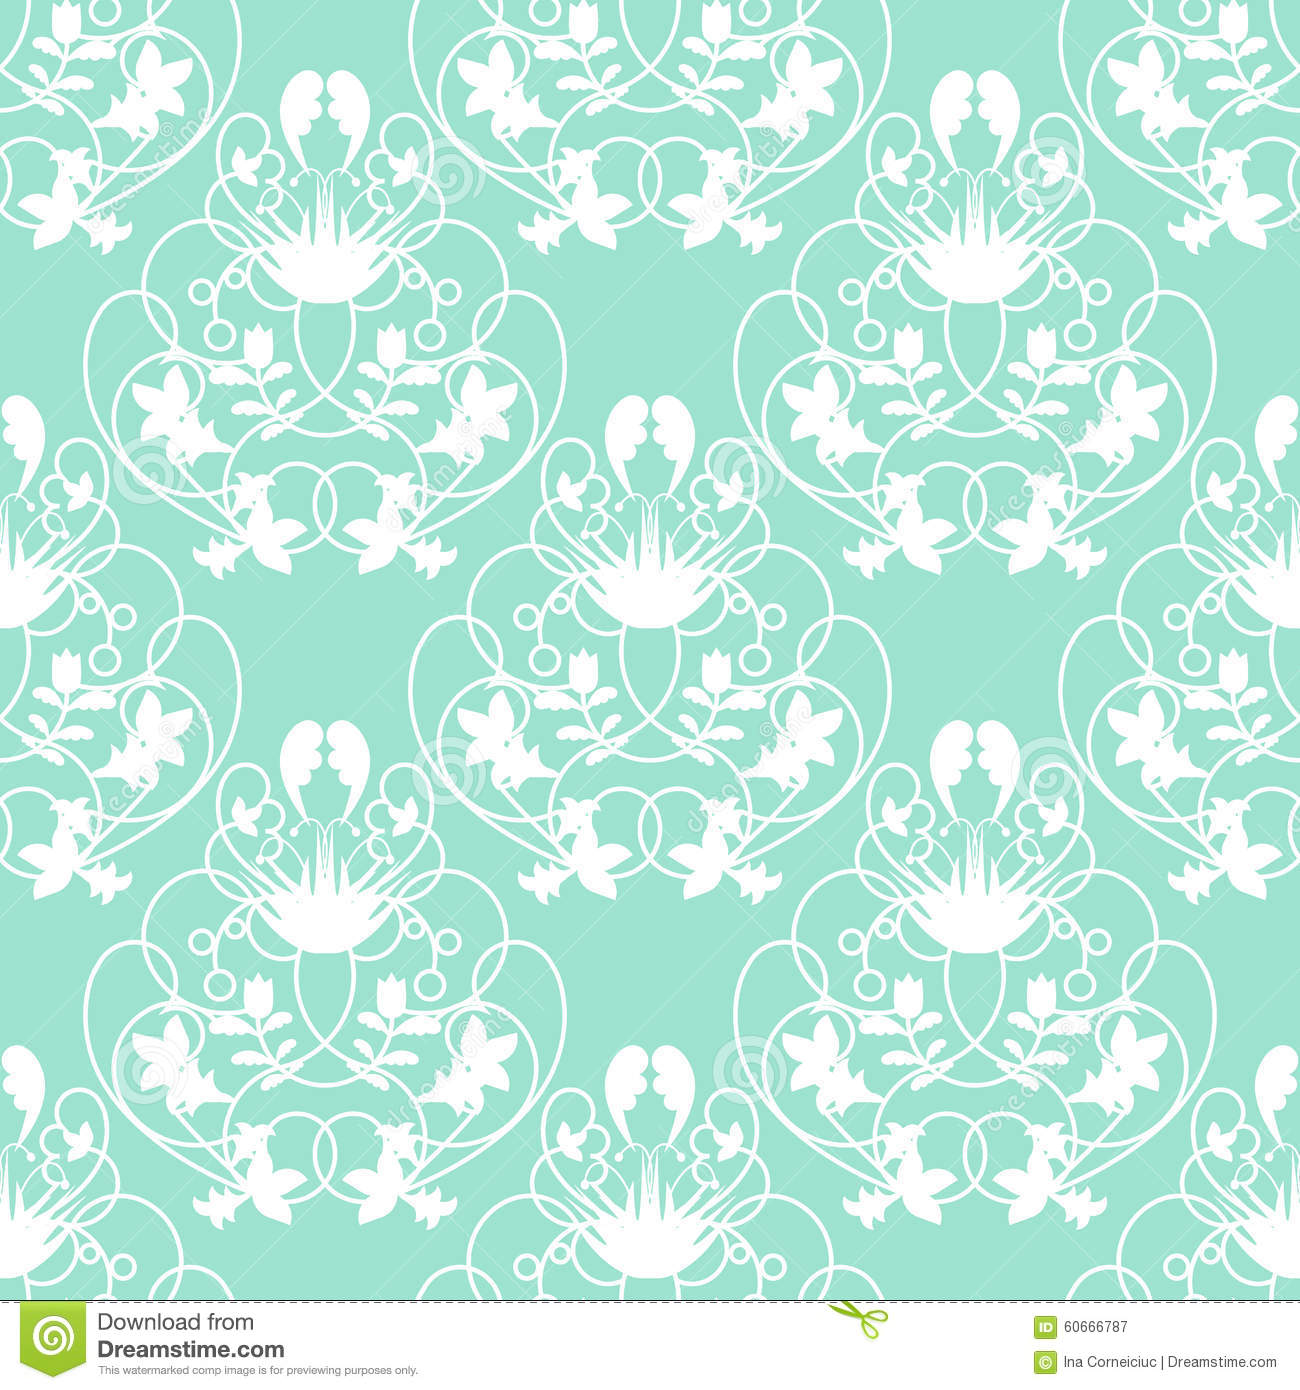 Elegant Damask Mint Seamless Vector Background With Delicate Swirl